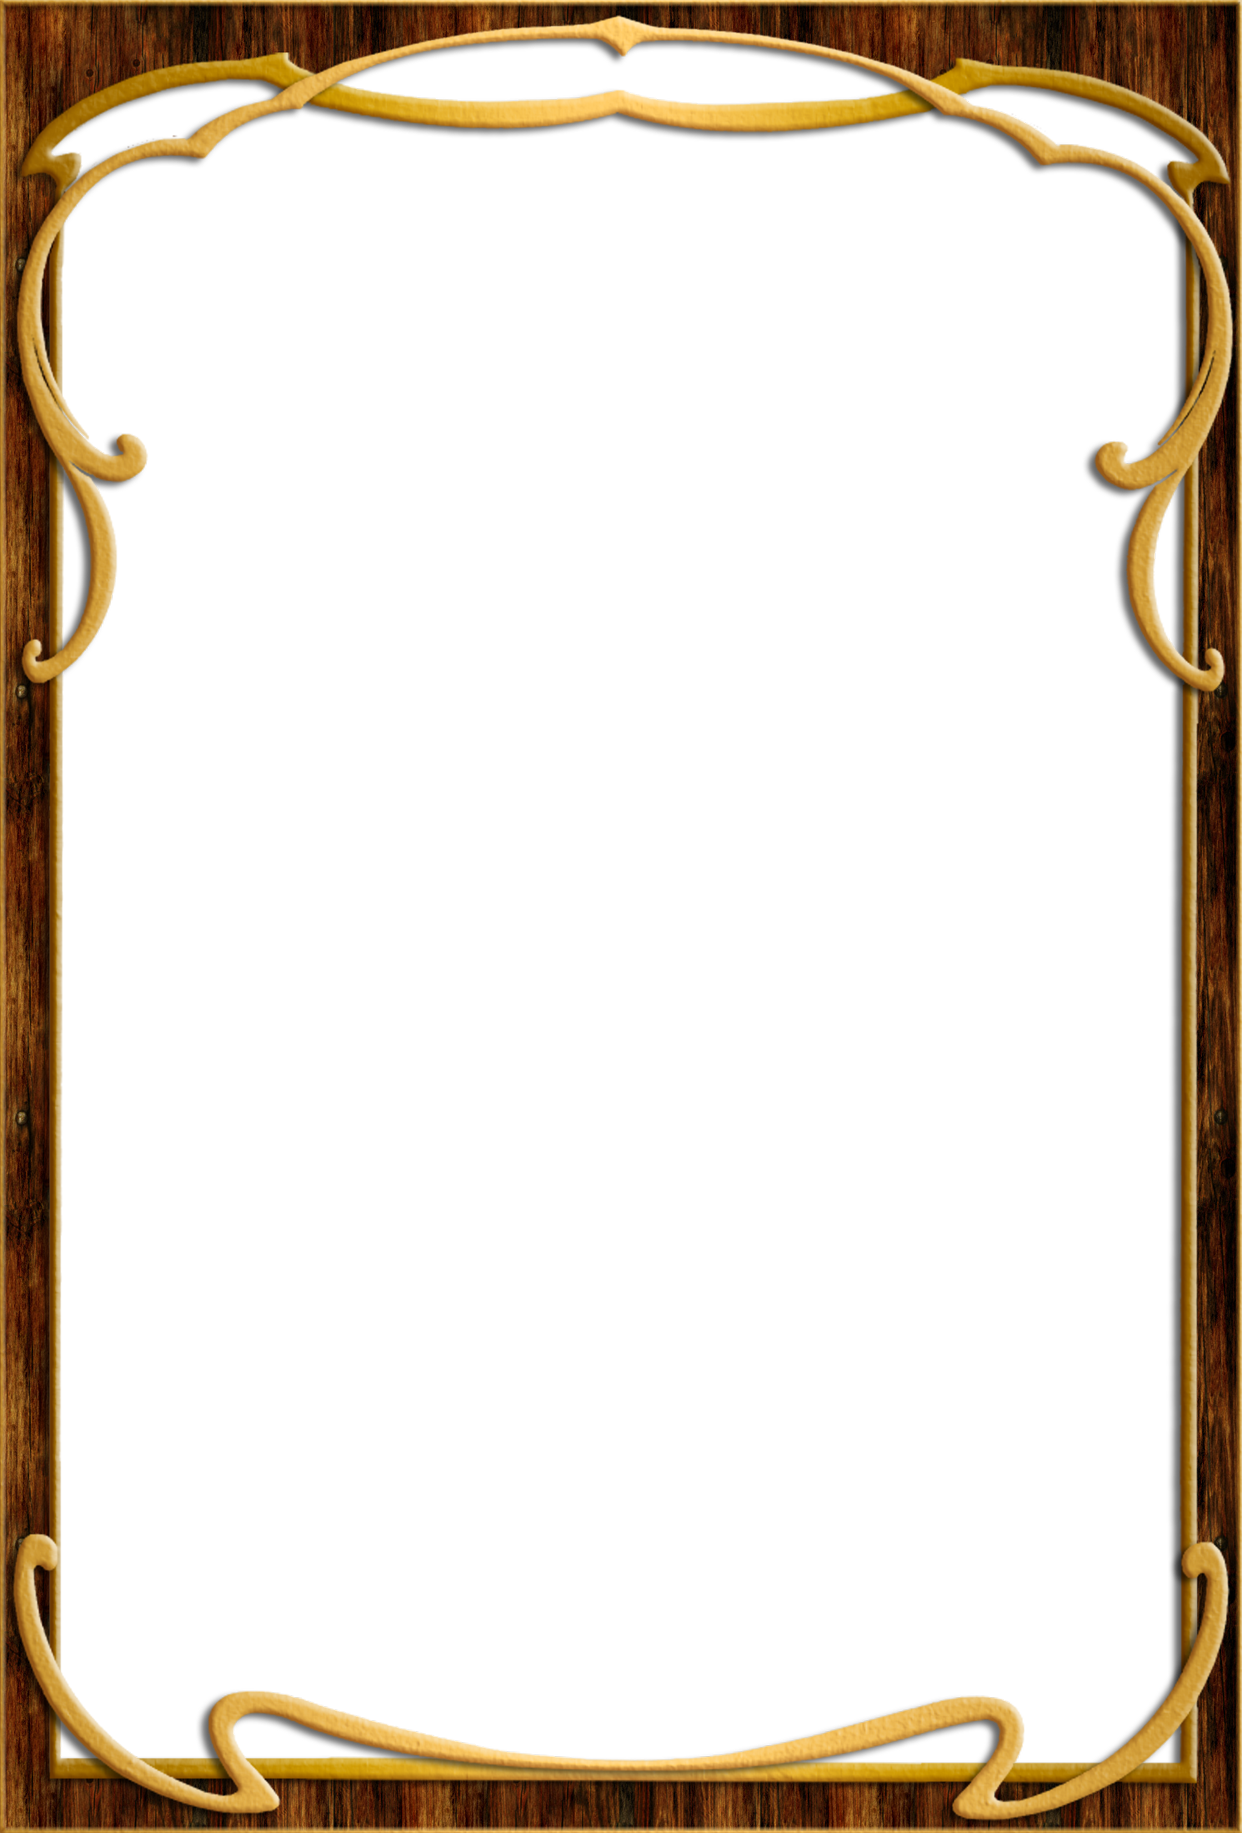 Frame photos attachments angels. Wood border png